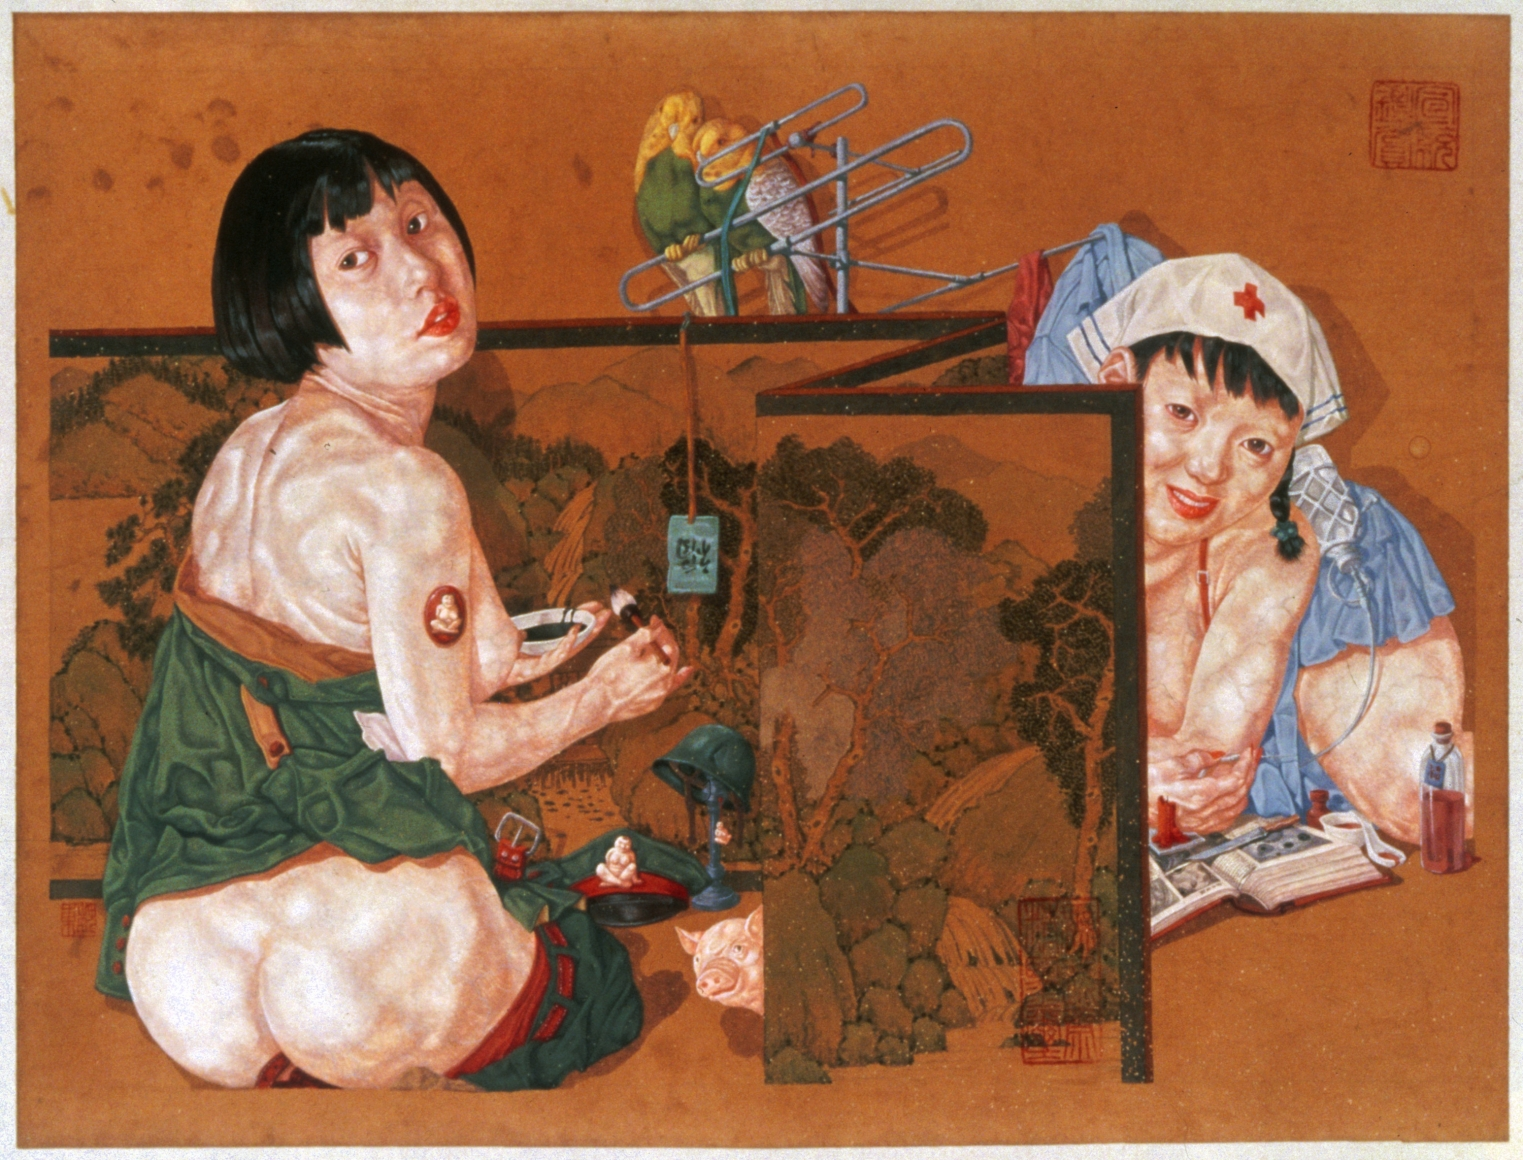 WEI DONG Distancing -- Blessing, 1997